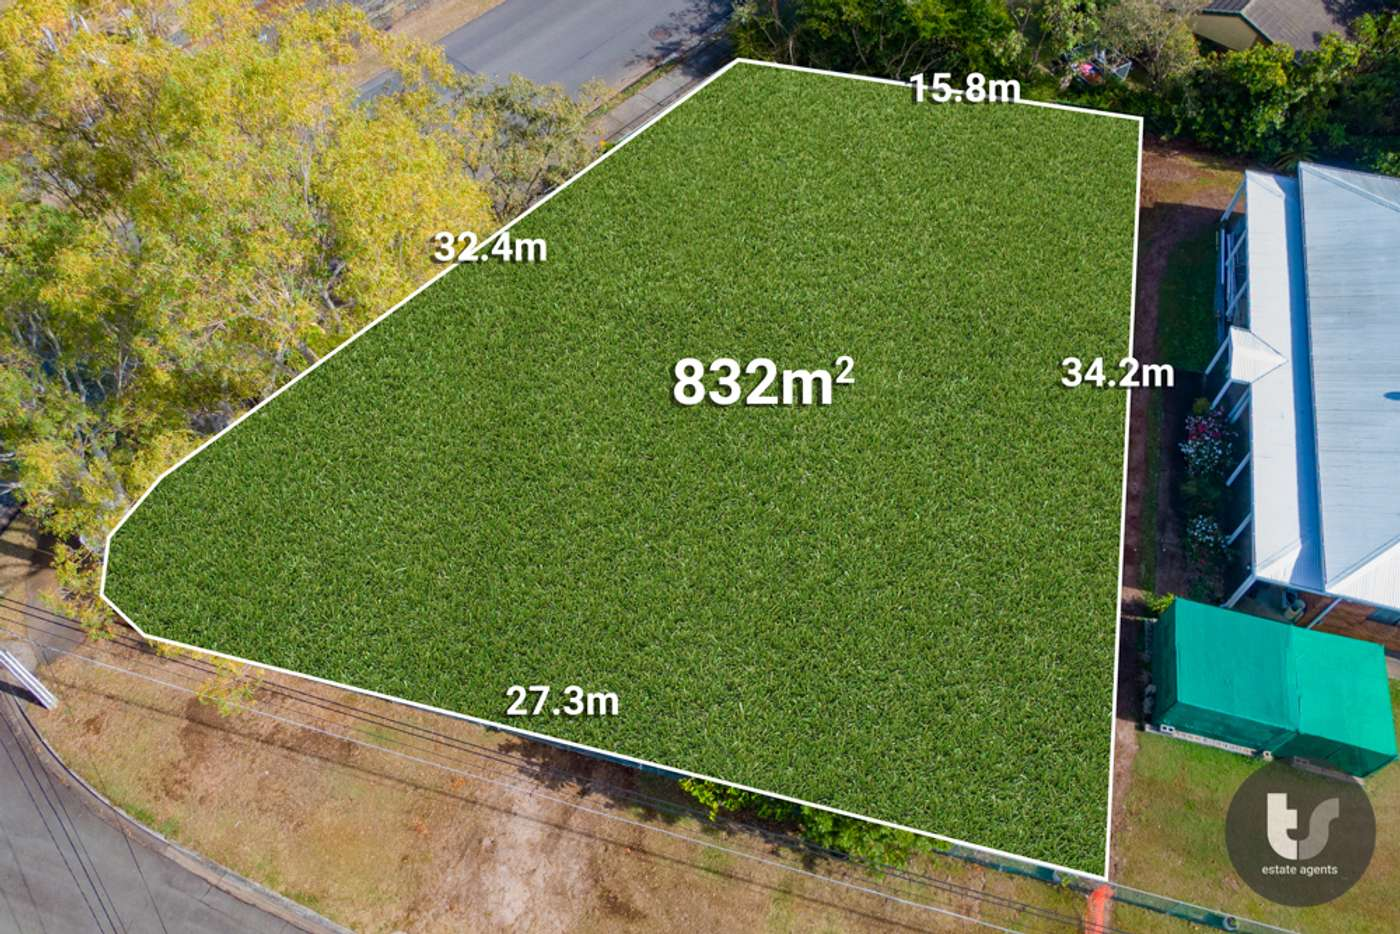 Main view of Homely residentialLand listing, 18 Maud Street, Birkdale QLD 4159